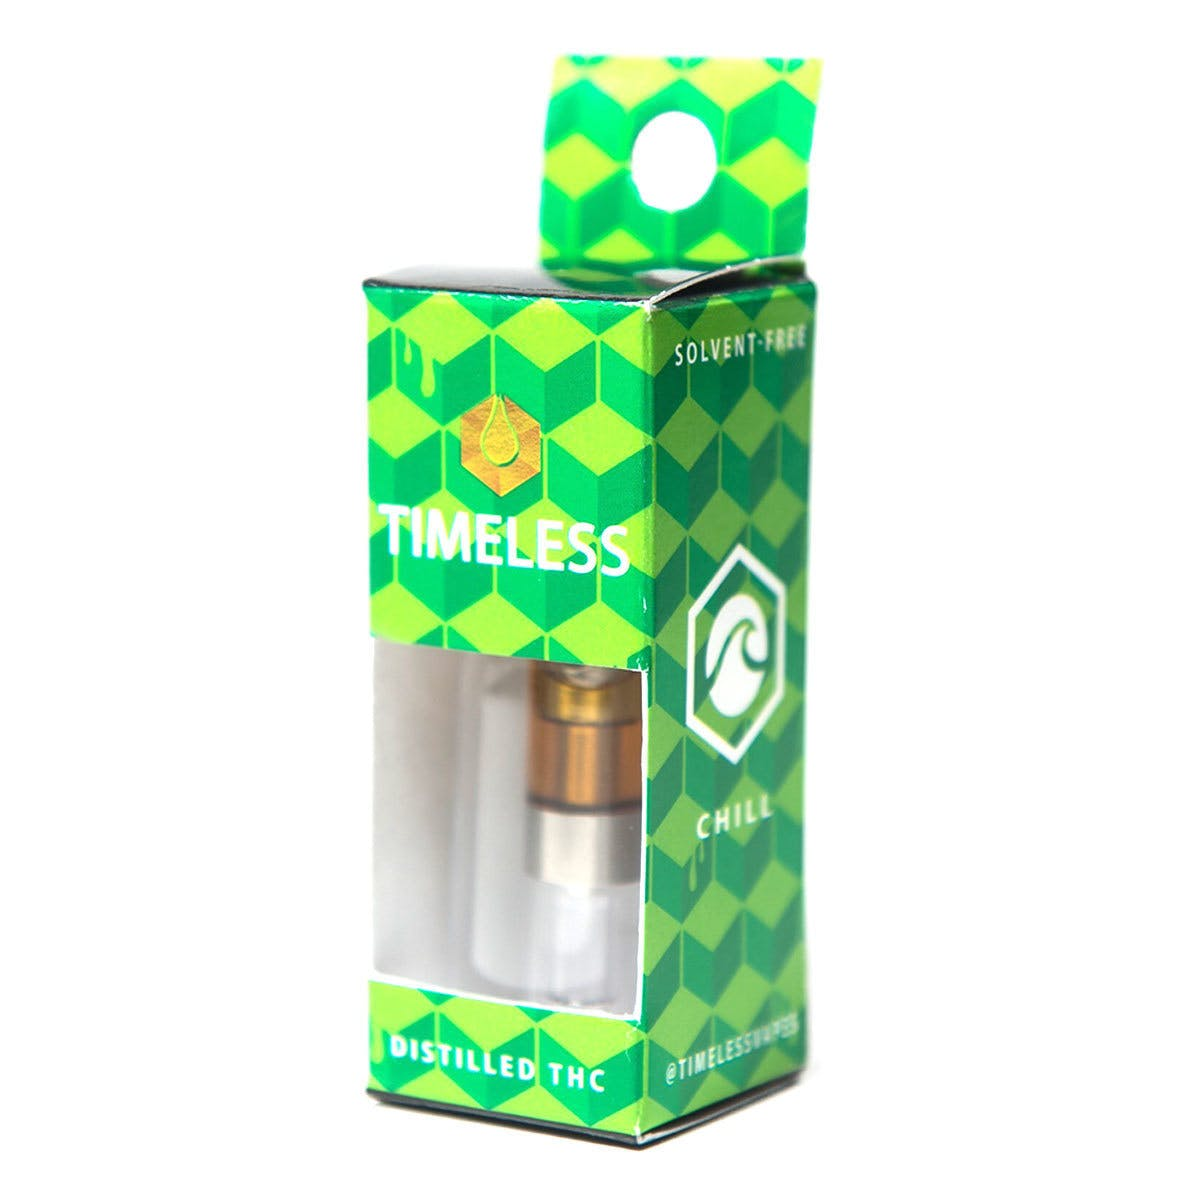 concentrate-timeless-vapes-500mg-gg4-vape-cartridge-chill